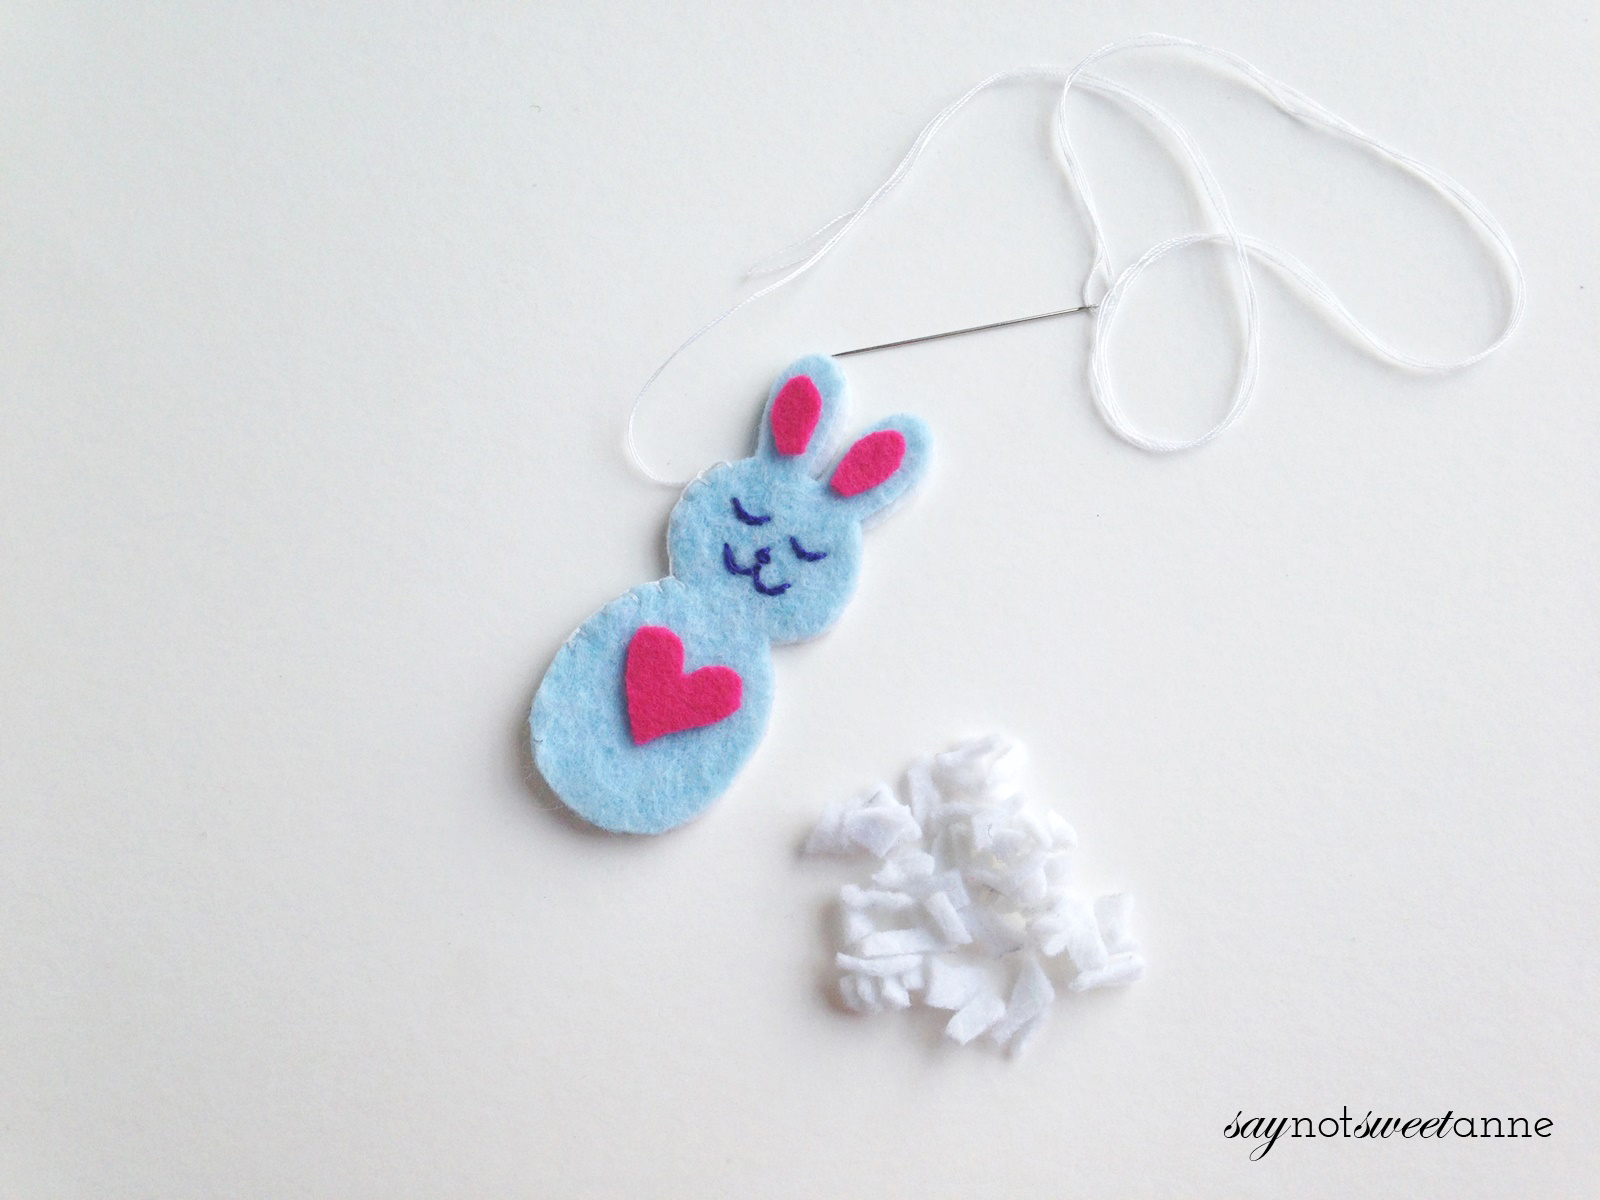 Celebrate spring and Easter with this adorable Happy Bunny! This easy felt craft is great for beginning crafters, and would make a cute basket stuffer! | saynotsweetanne.com (3) copy